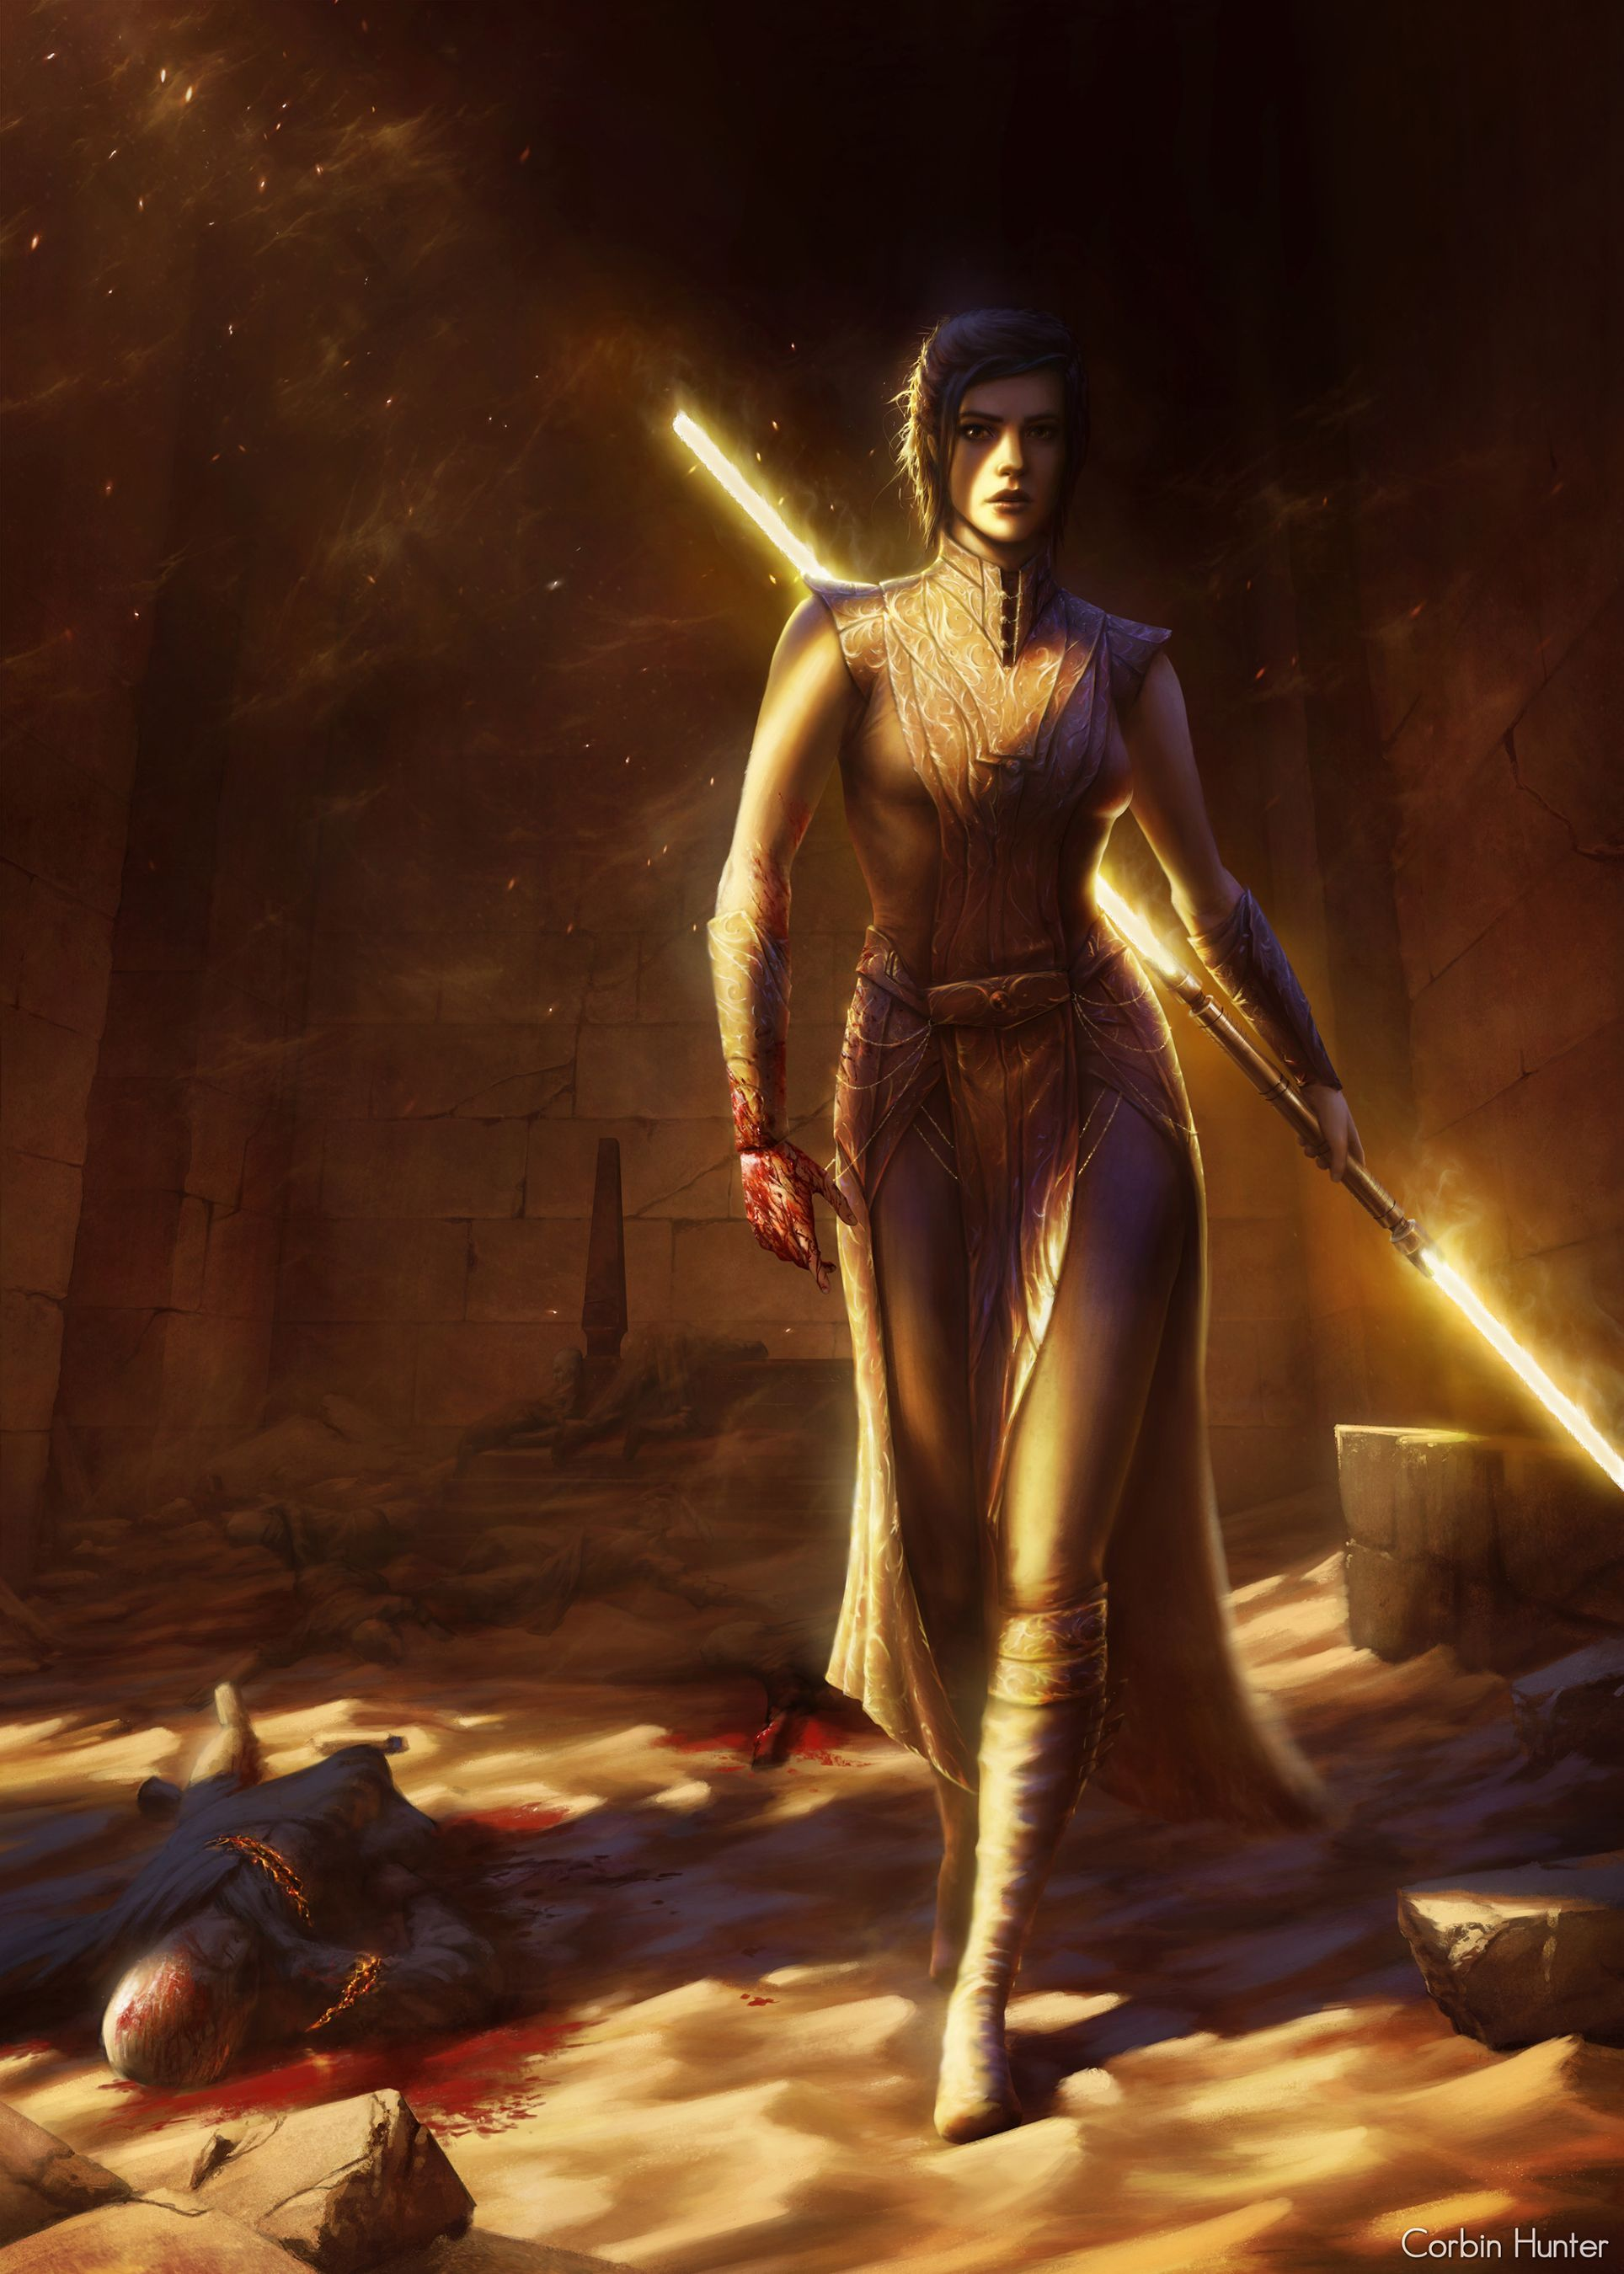 Stunning Painting Of Bastila Shan From Star Wars With Images Star Wars Illustration Star Wars The Old Star Wars Artwork